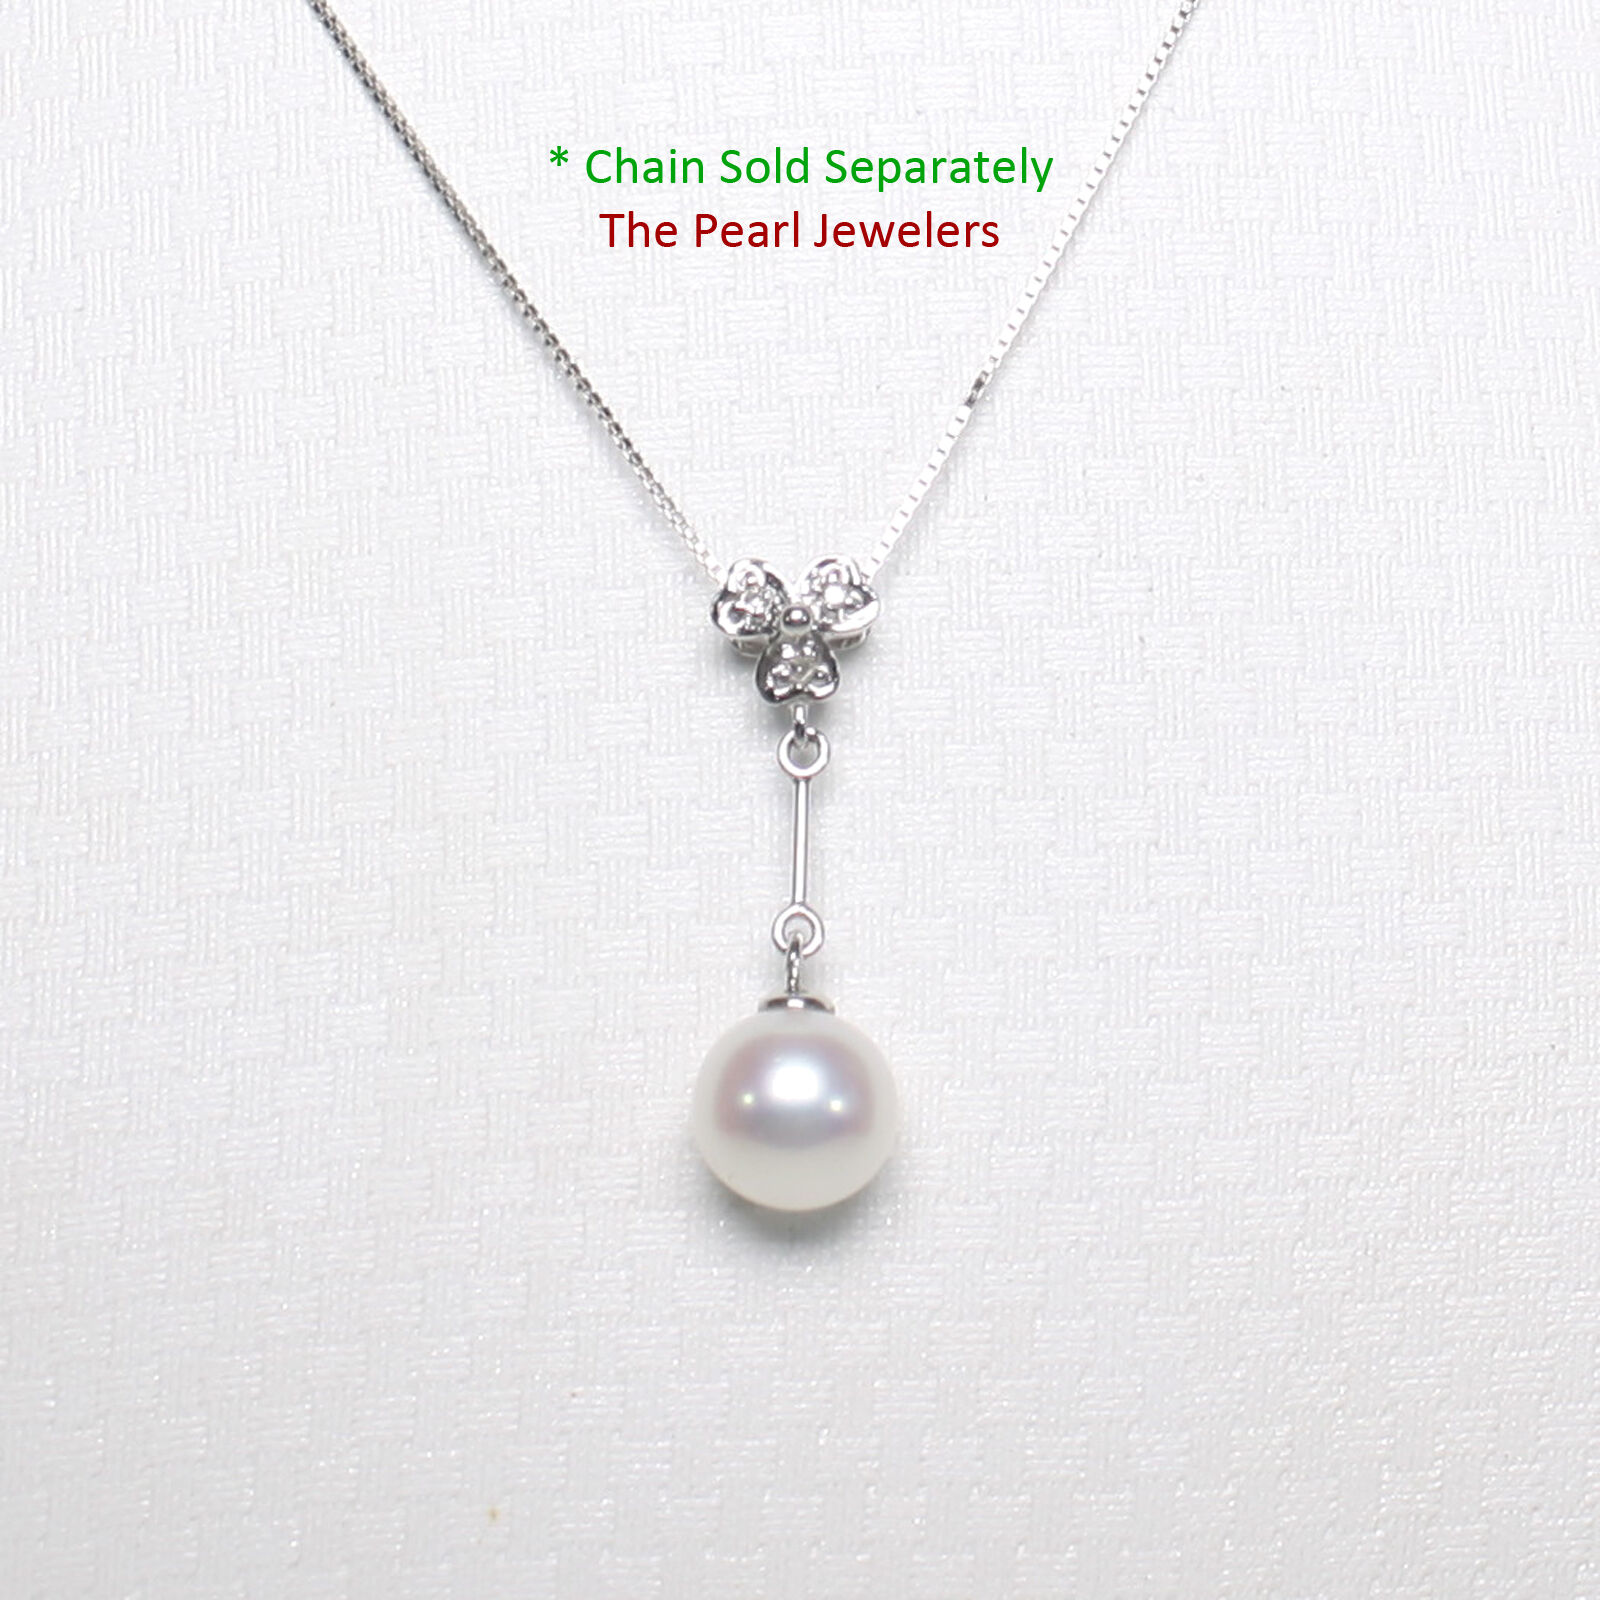 14k White gold Hearts Bail Dangling 7.5-8mm AAA White Cultured Pearl Pendant TPJ